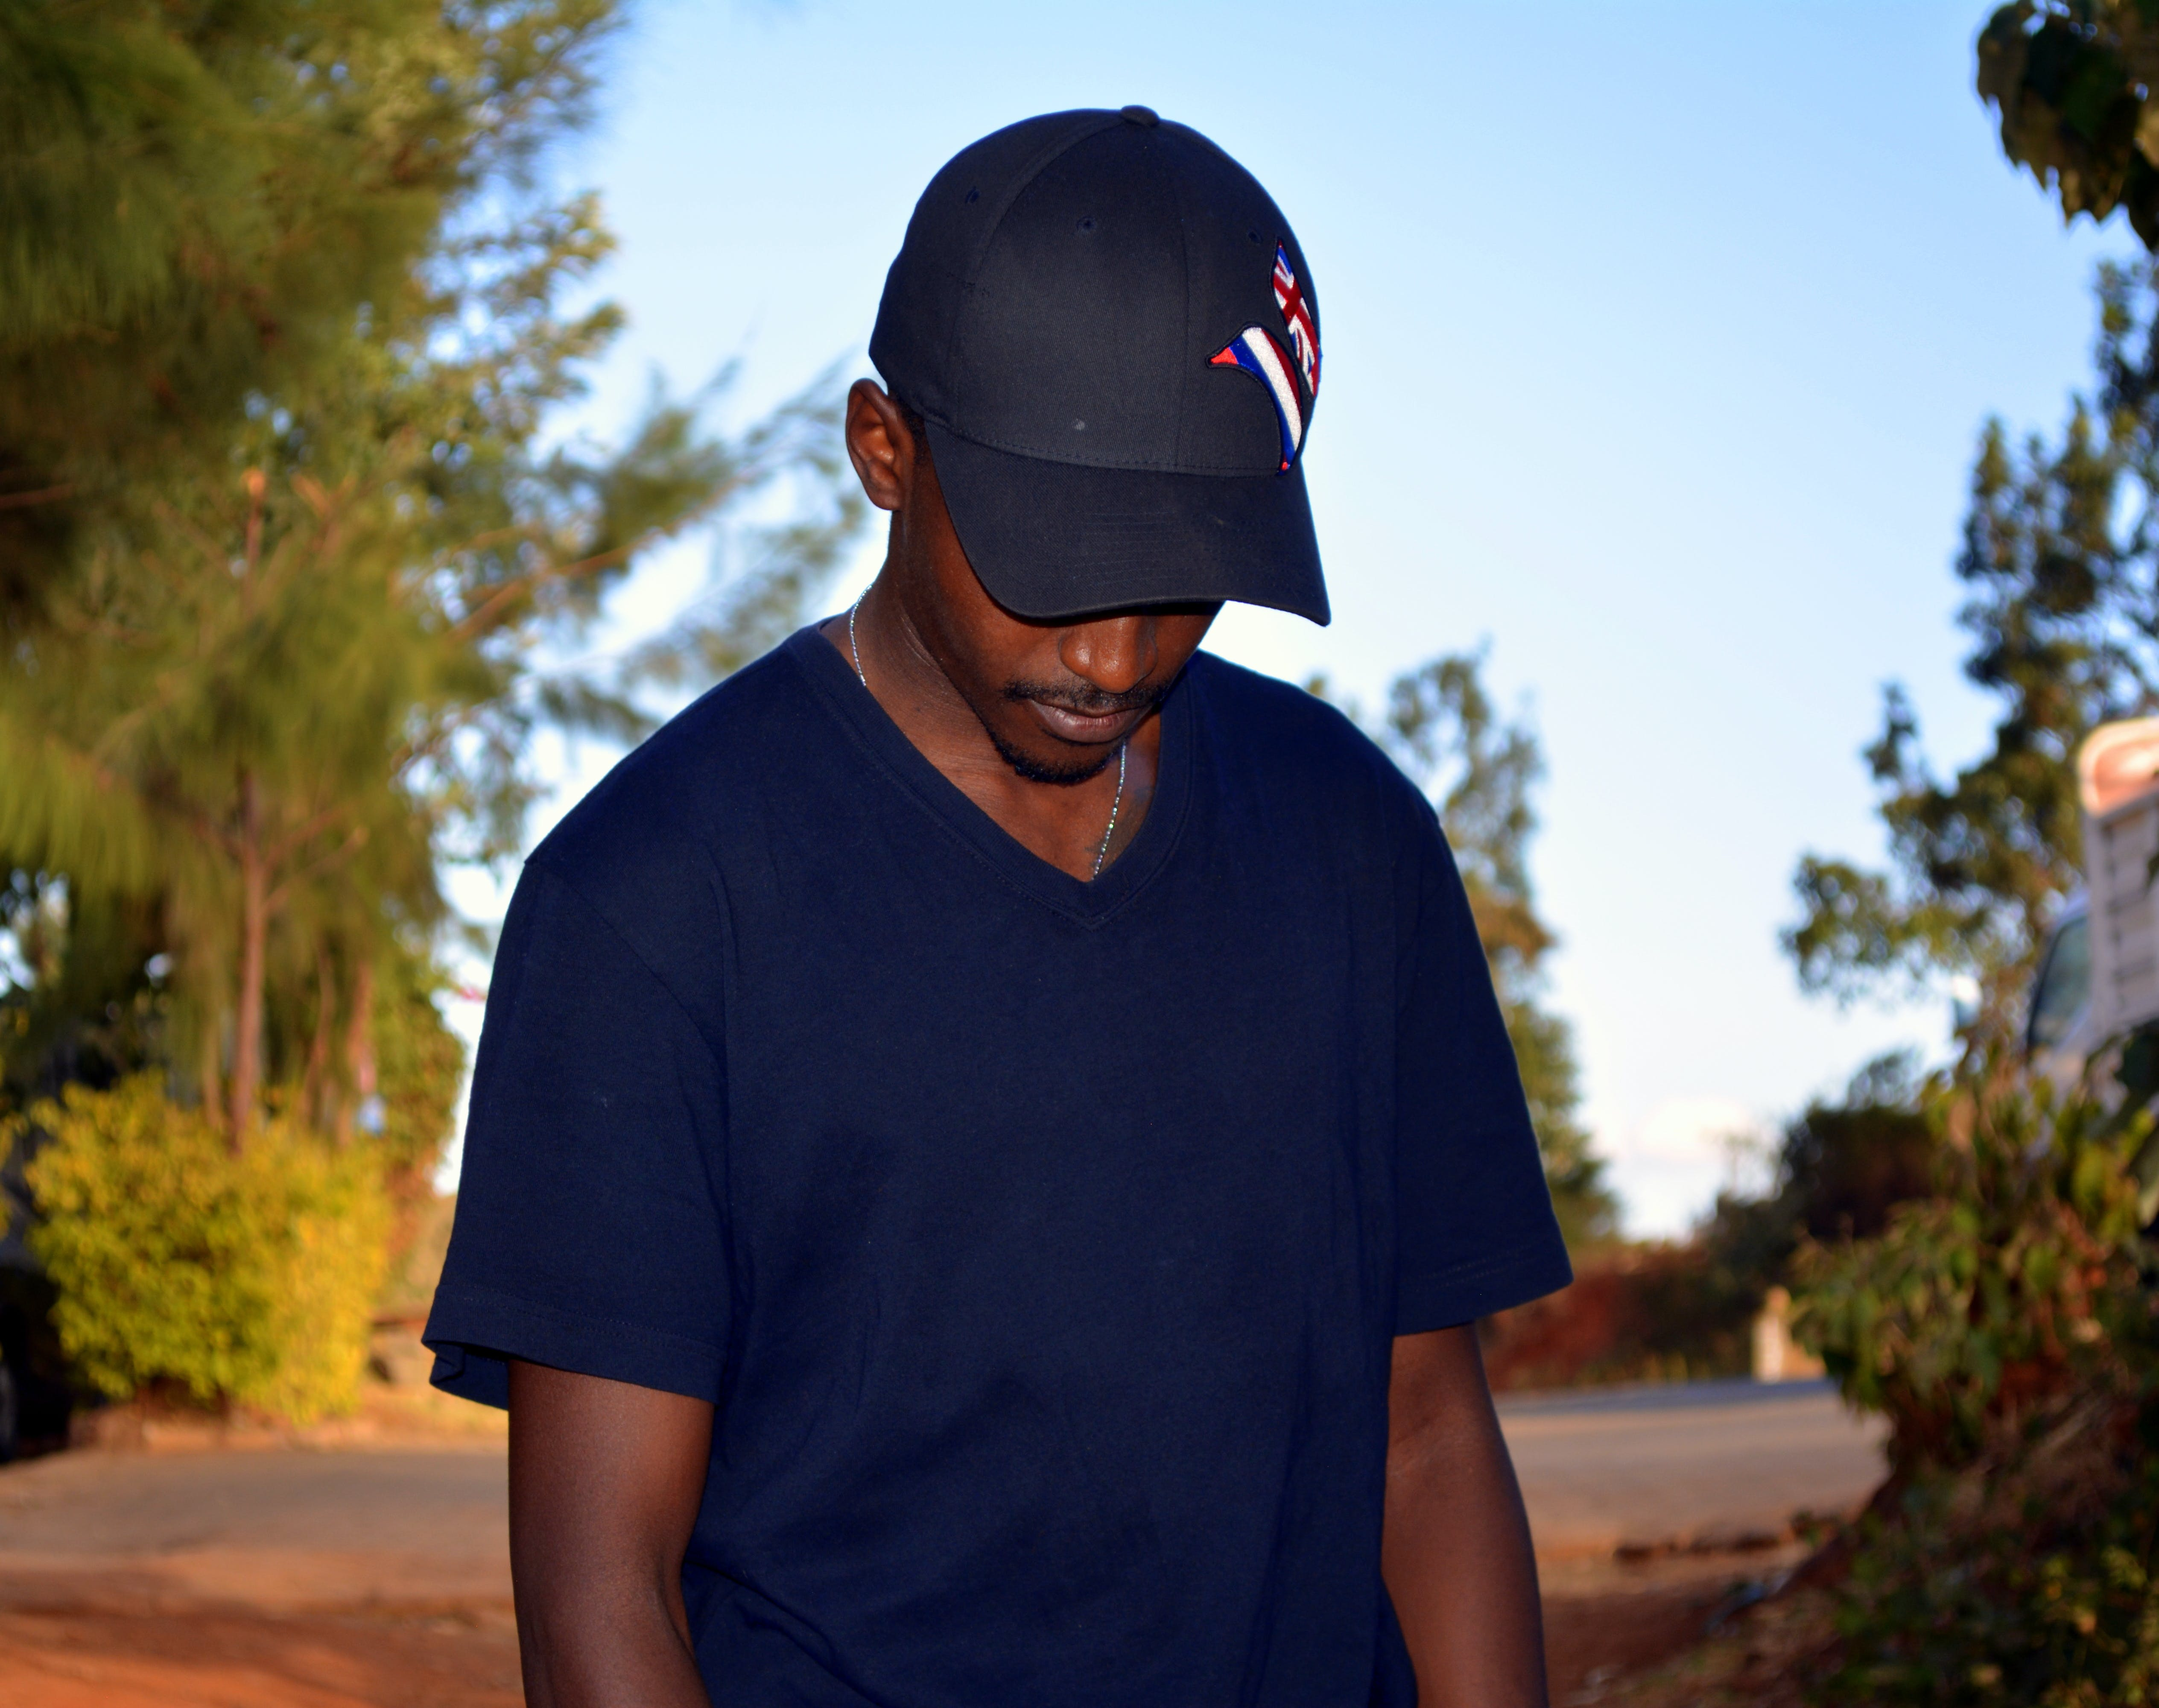 Man Wearing Black Fitted Cap And Black V-neck T-shirt